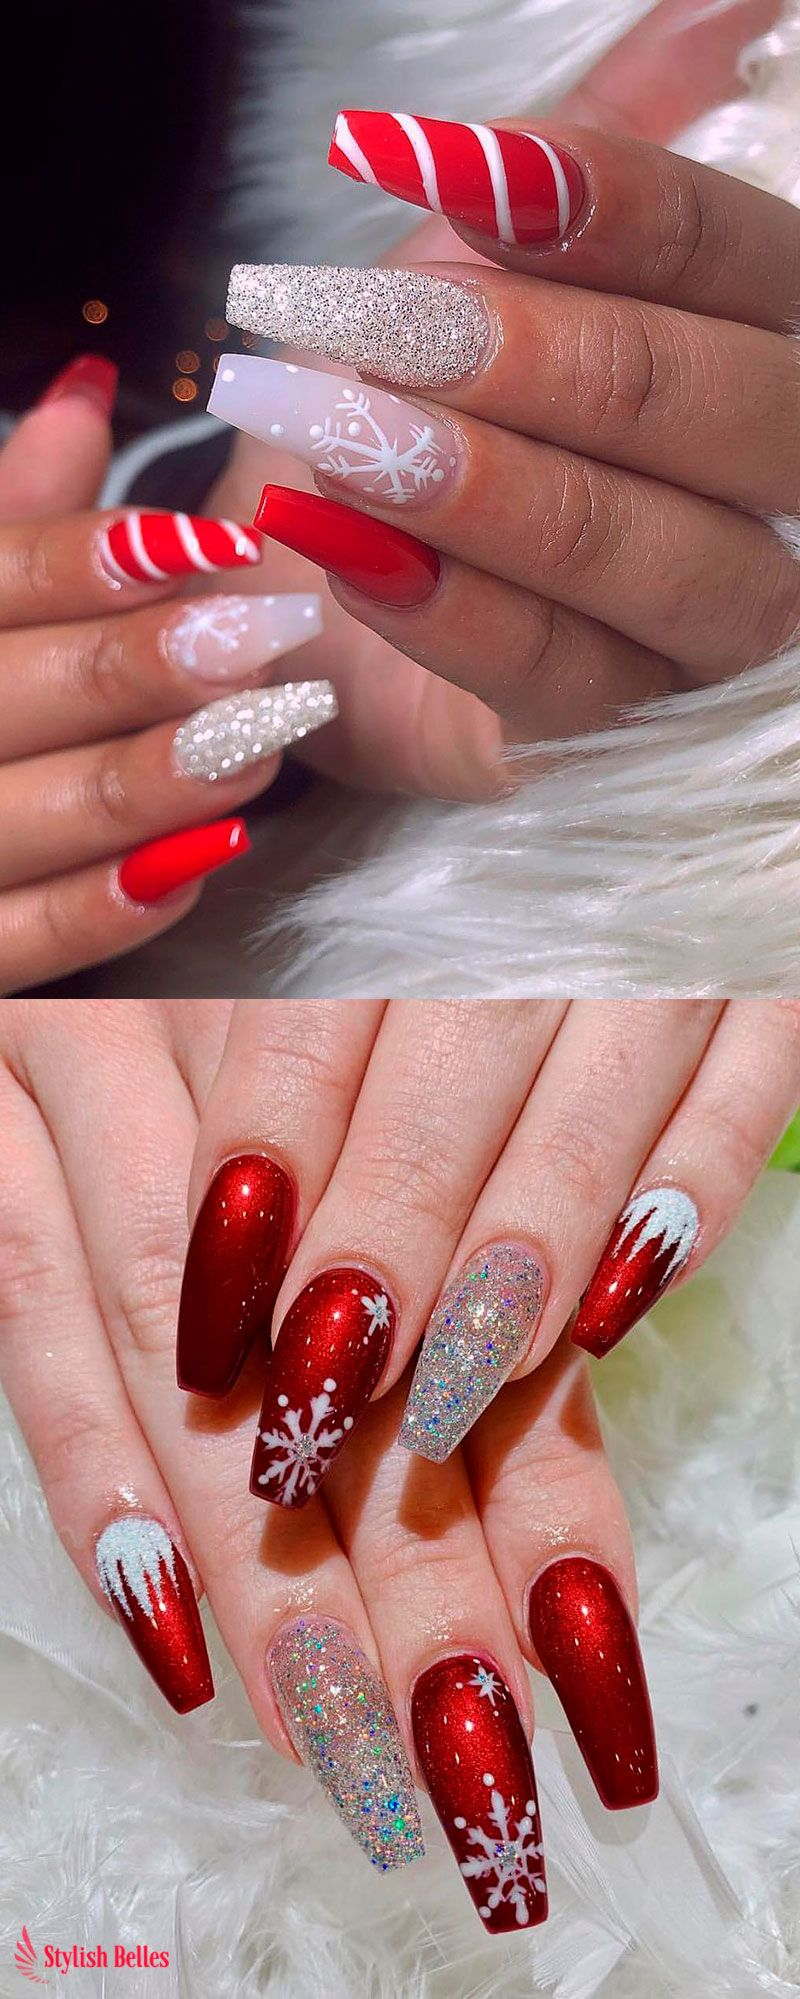 Amazing Snowflake Glitter And Red Christmas Nails Ideas Christmasnails Christmasnailar Red Christmas Nails Christmas Nail Designs Christmas Nails Acrylic